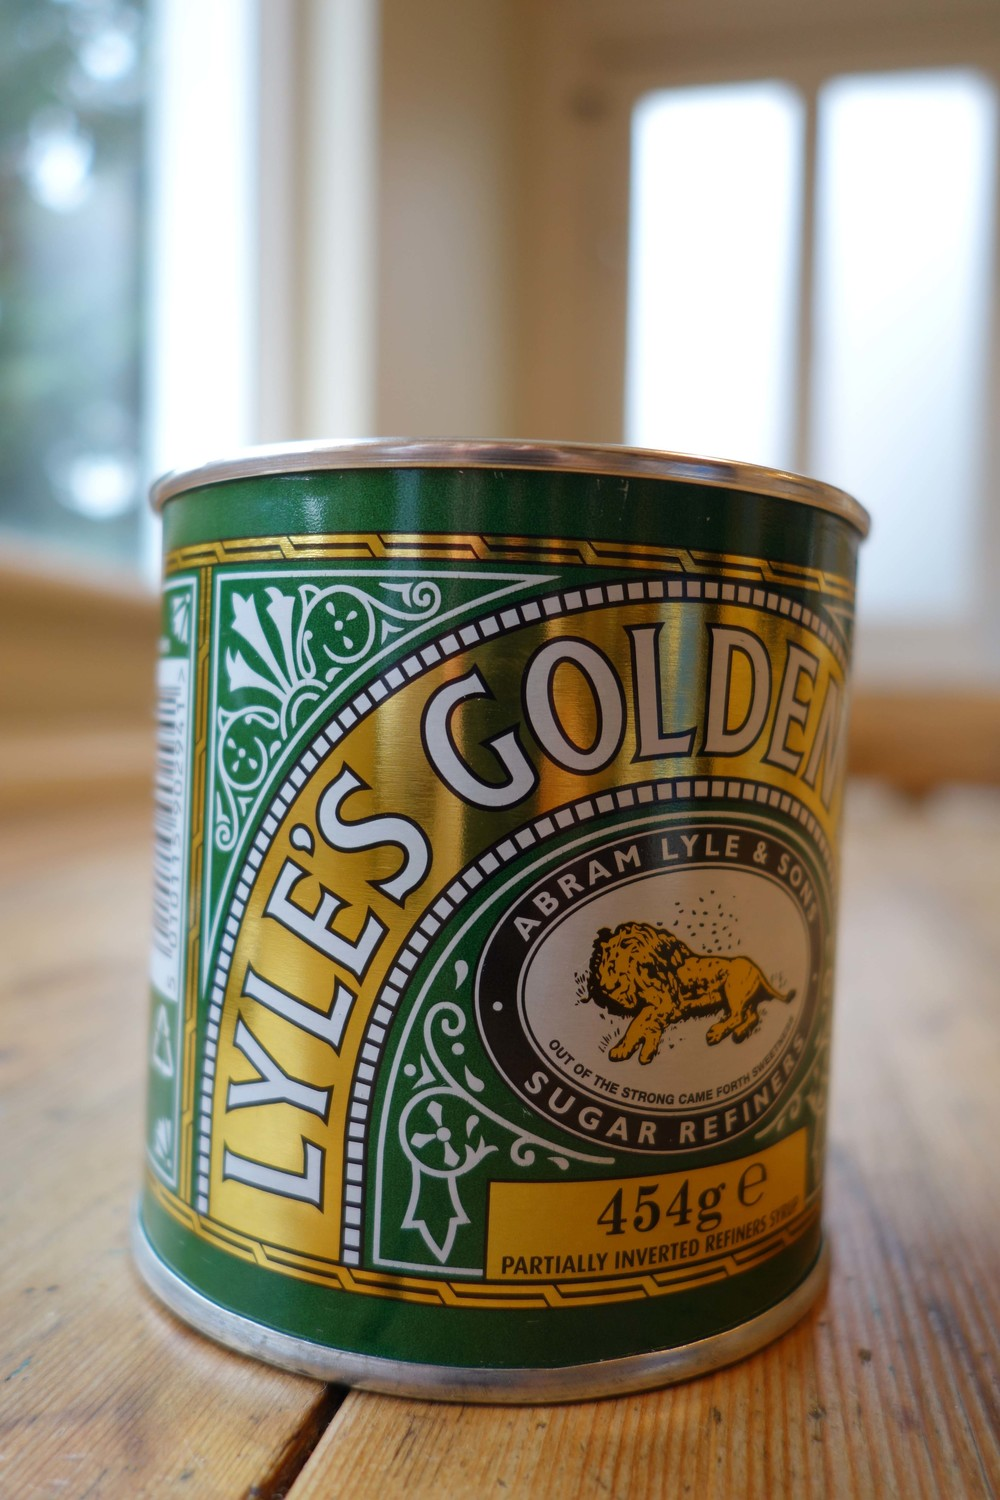 Lyle's Golden syrup tin